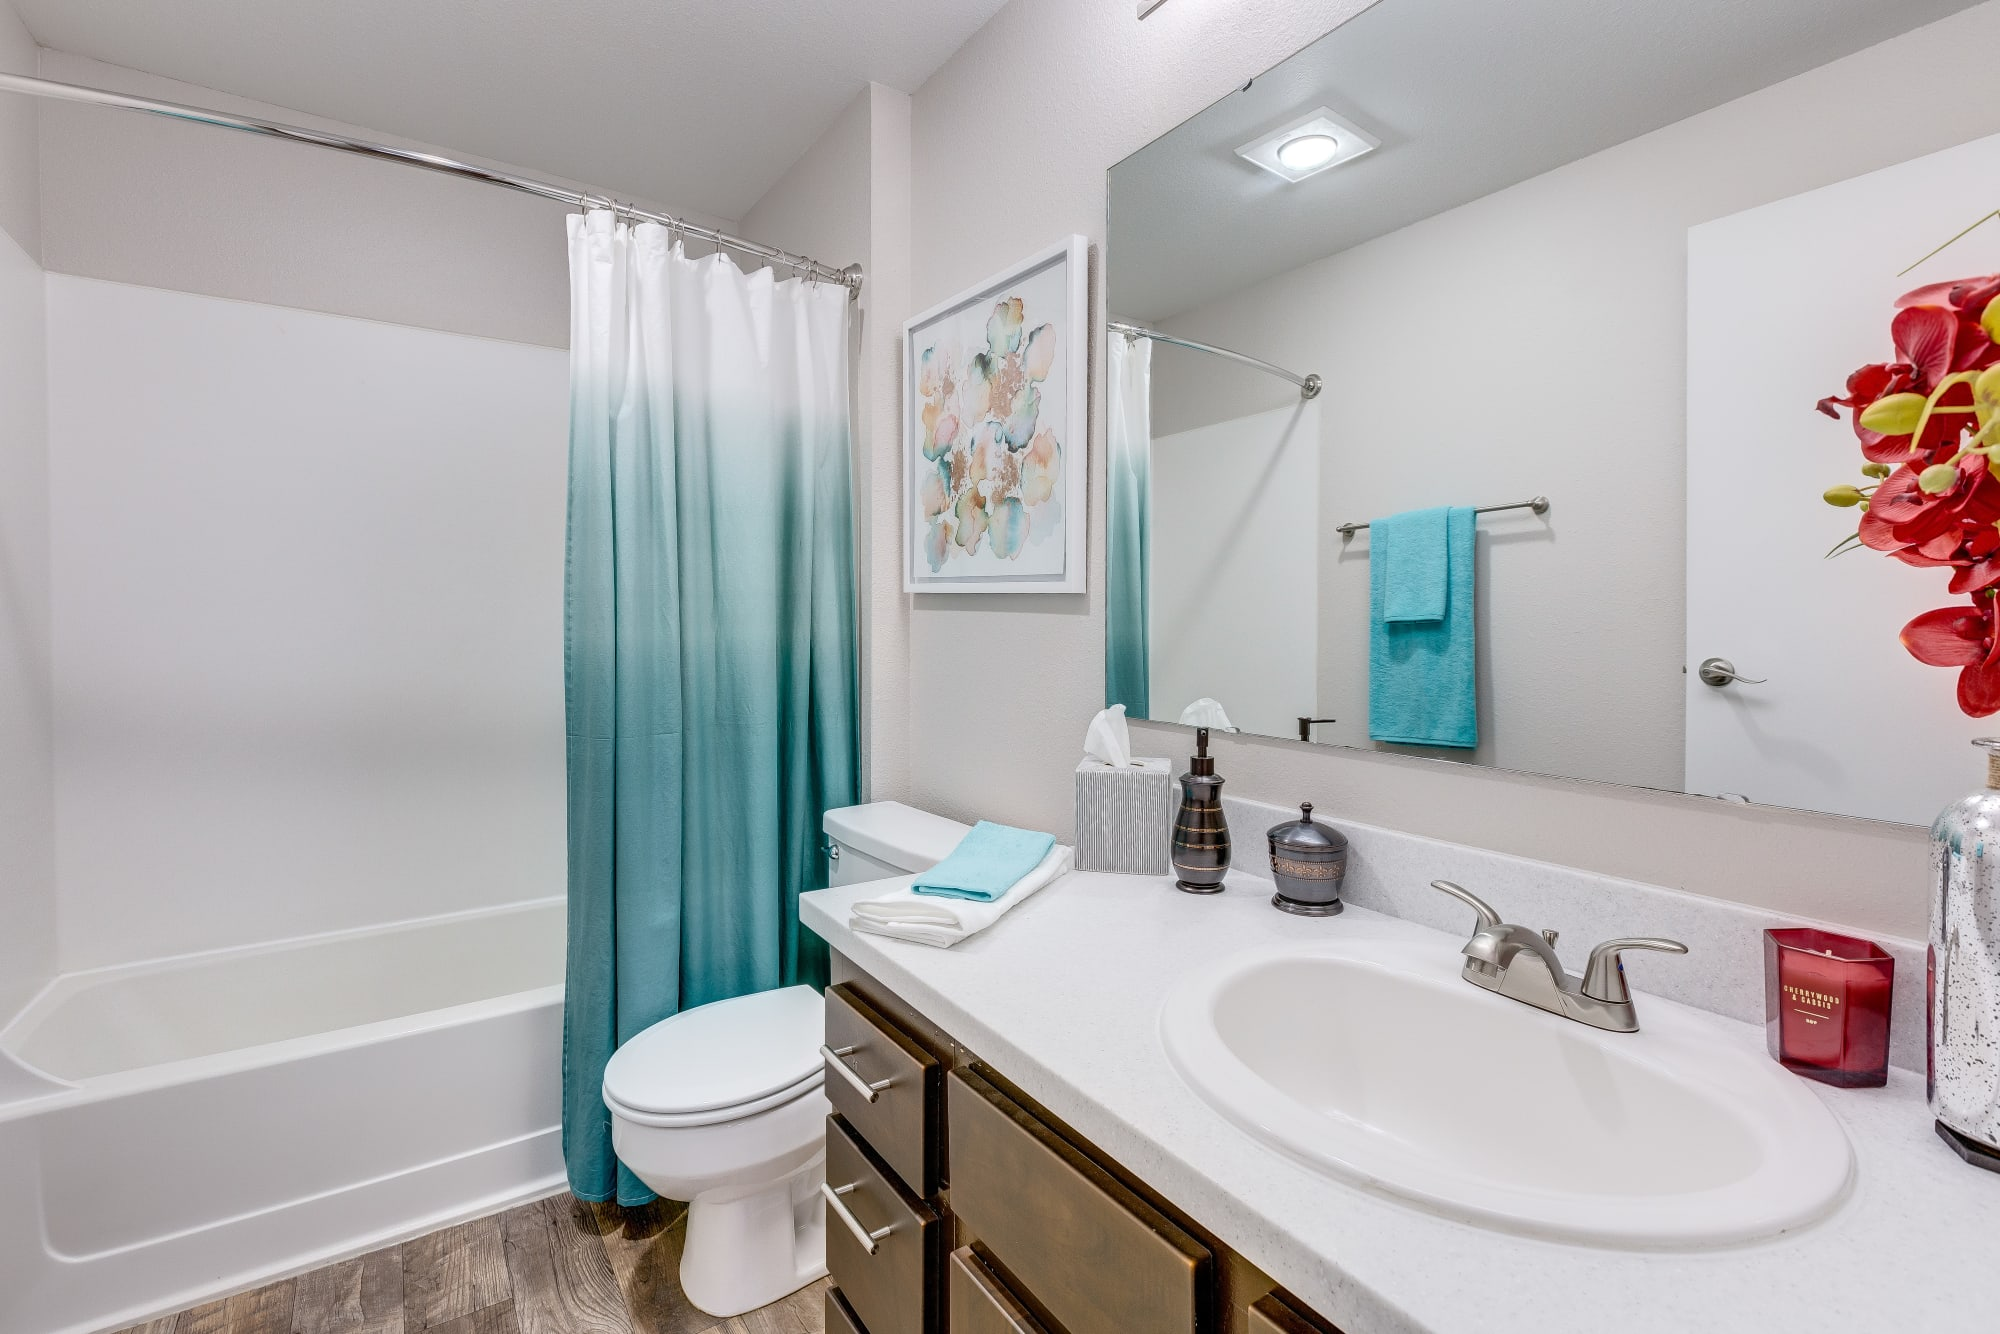 A bathroom with a white counter top and large mirror at Cascade Ridge in Silverdale, Washington